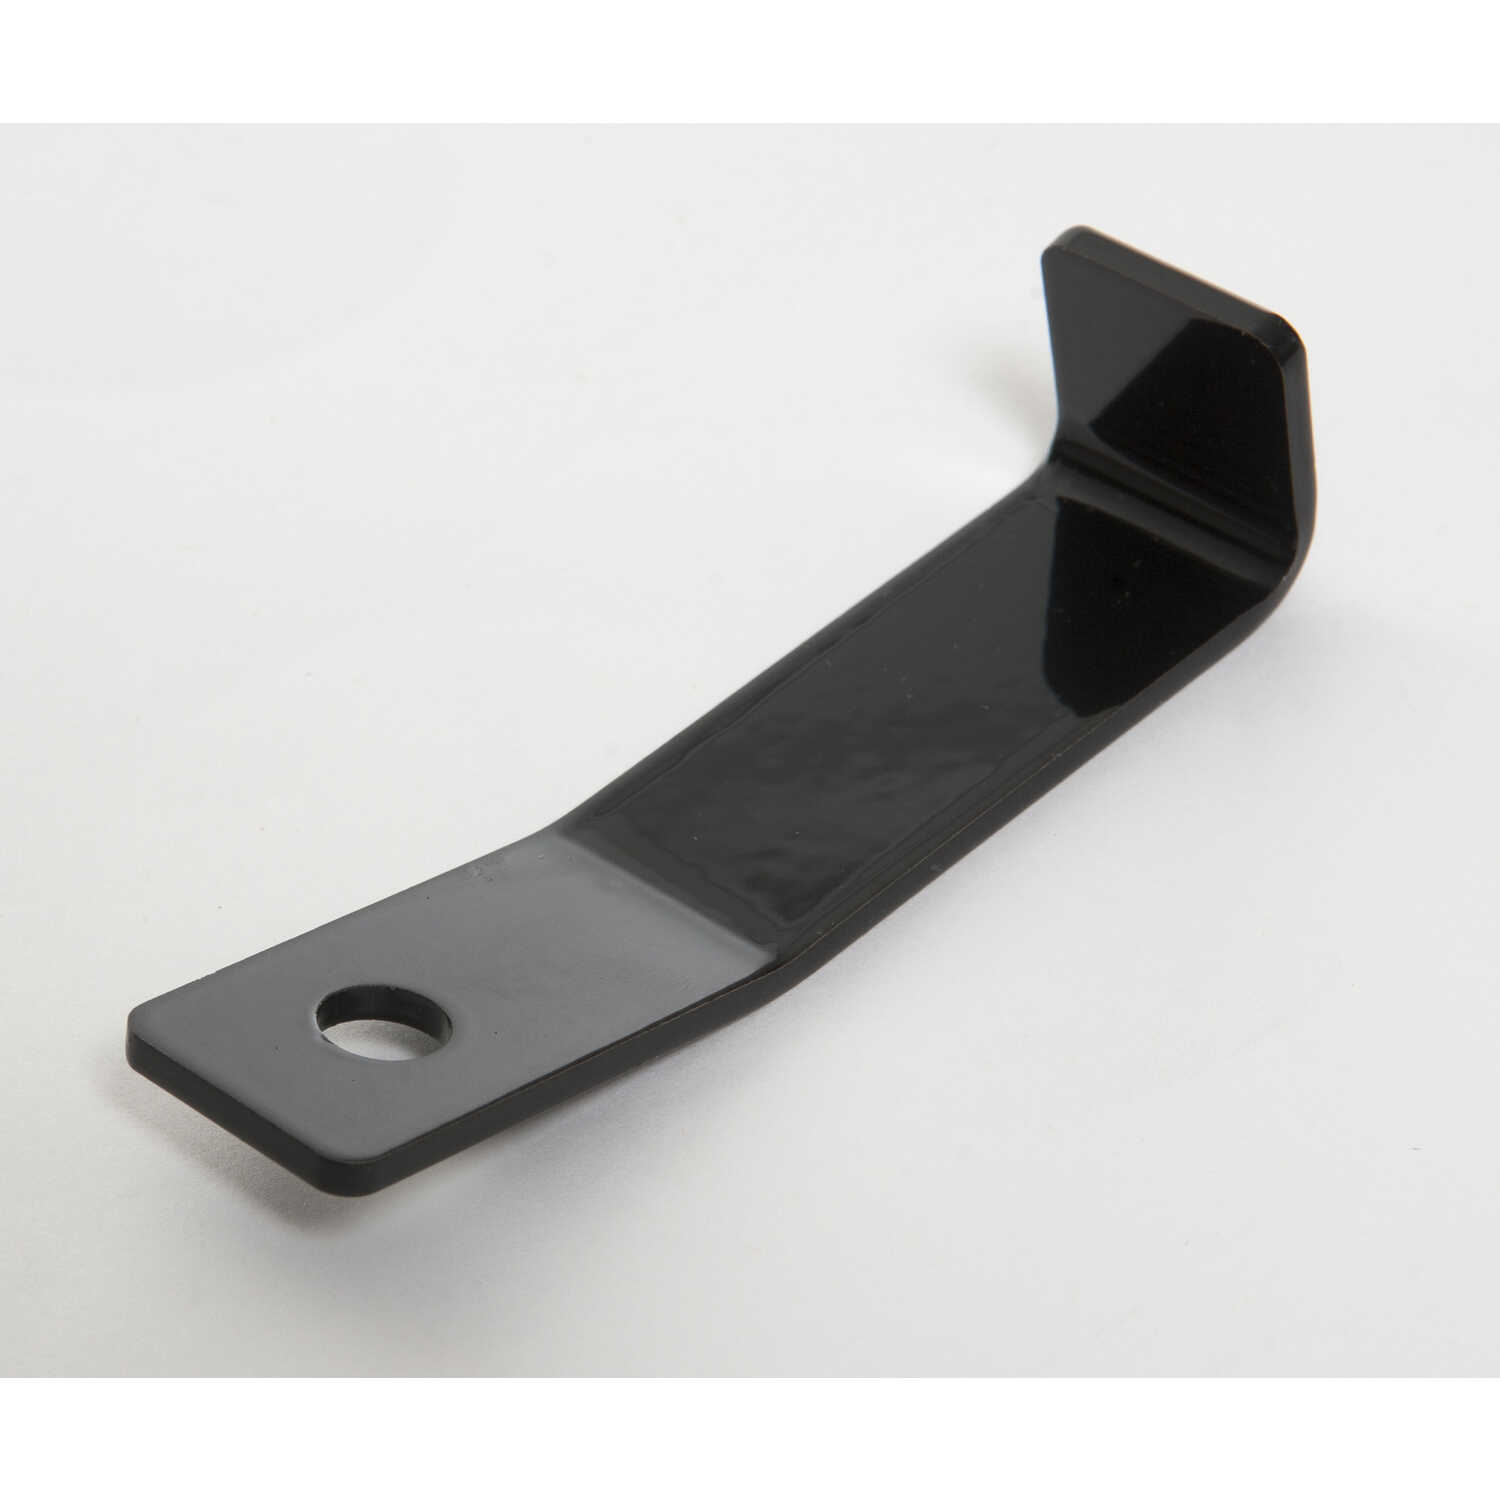 YETI  Locking Bracket  Black  1 each